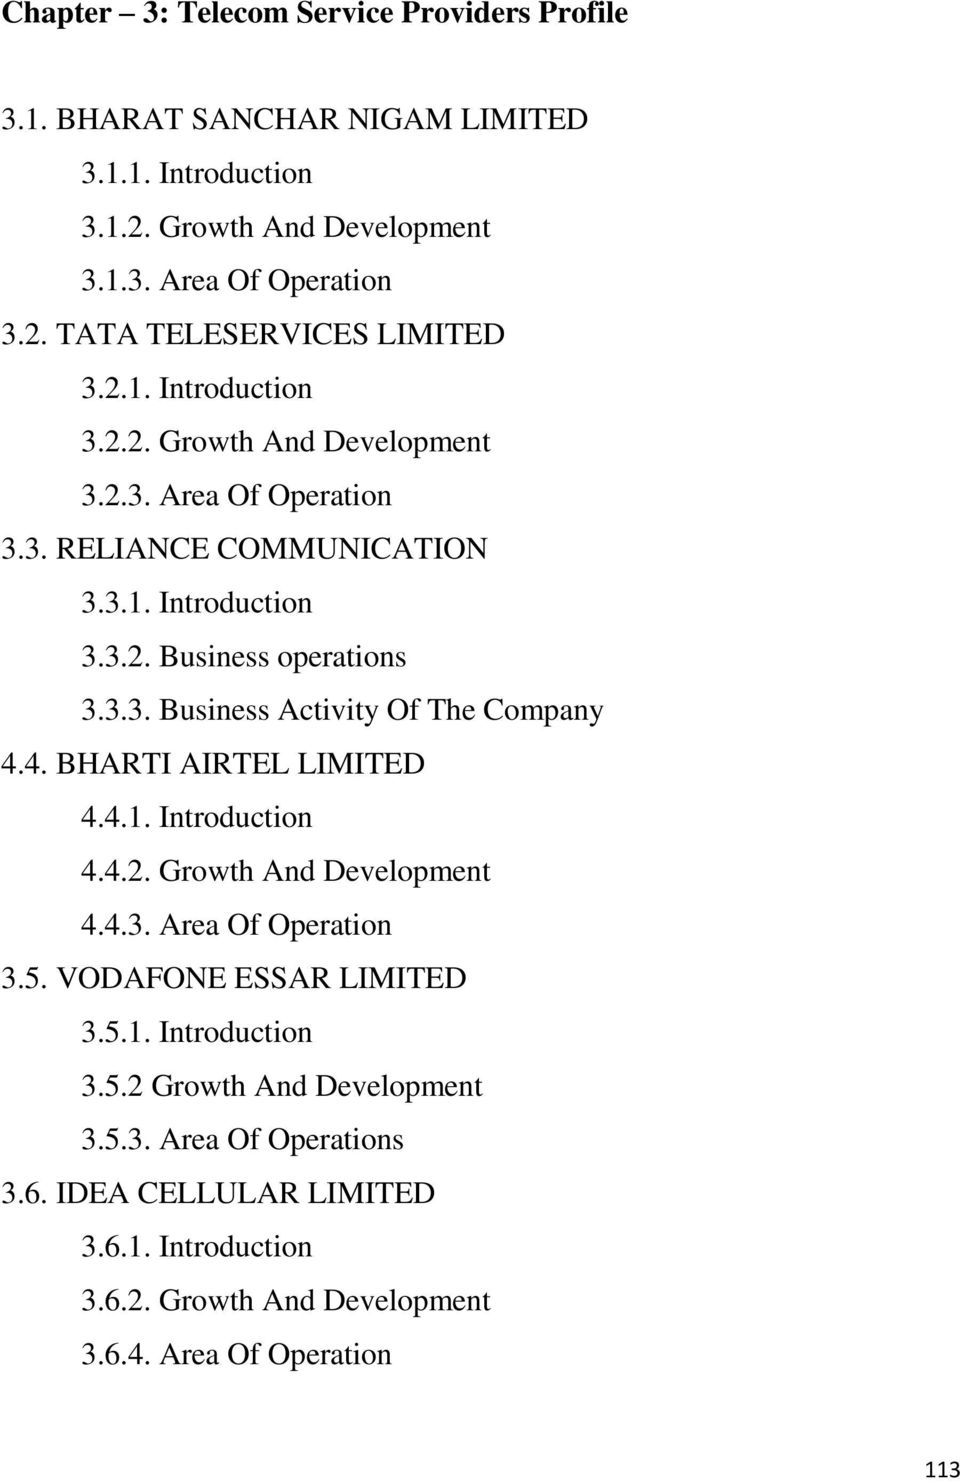 4. BHARTI AIRTEL LIMITED 4.4.1. Introduction 4.4.2. Growth And Development 4.4.3. Area Of Operation 3.5. VODAFONE ESSAR LIMITED 3.5.1. Introduction 3.5.2 Growth And Development 3.